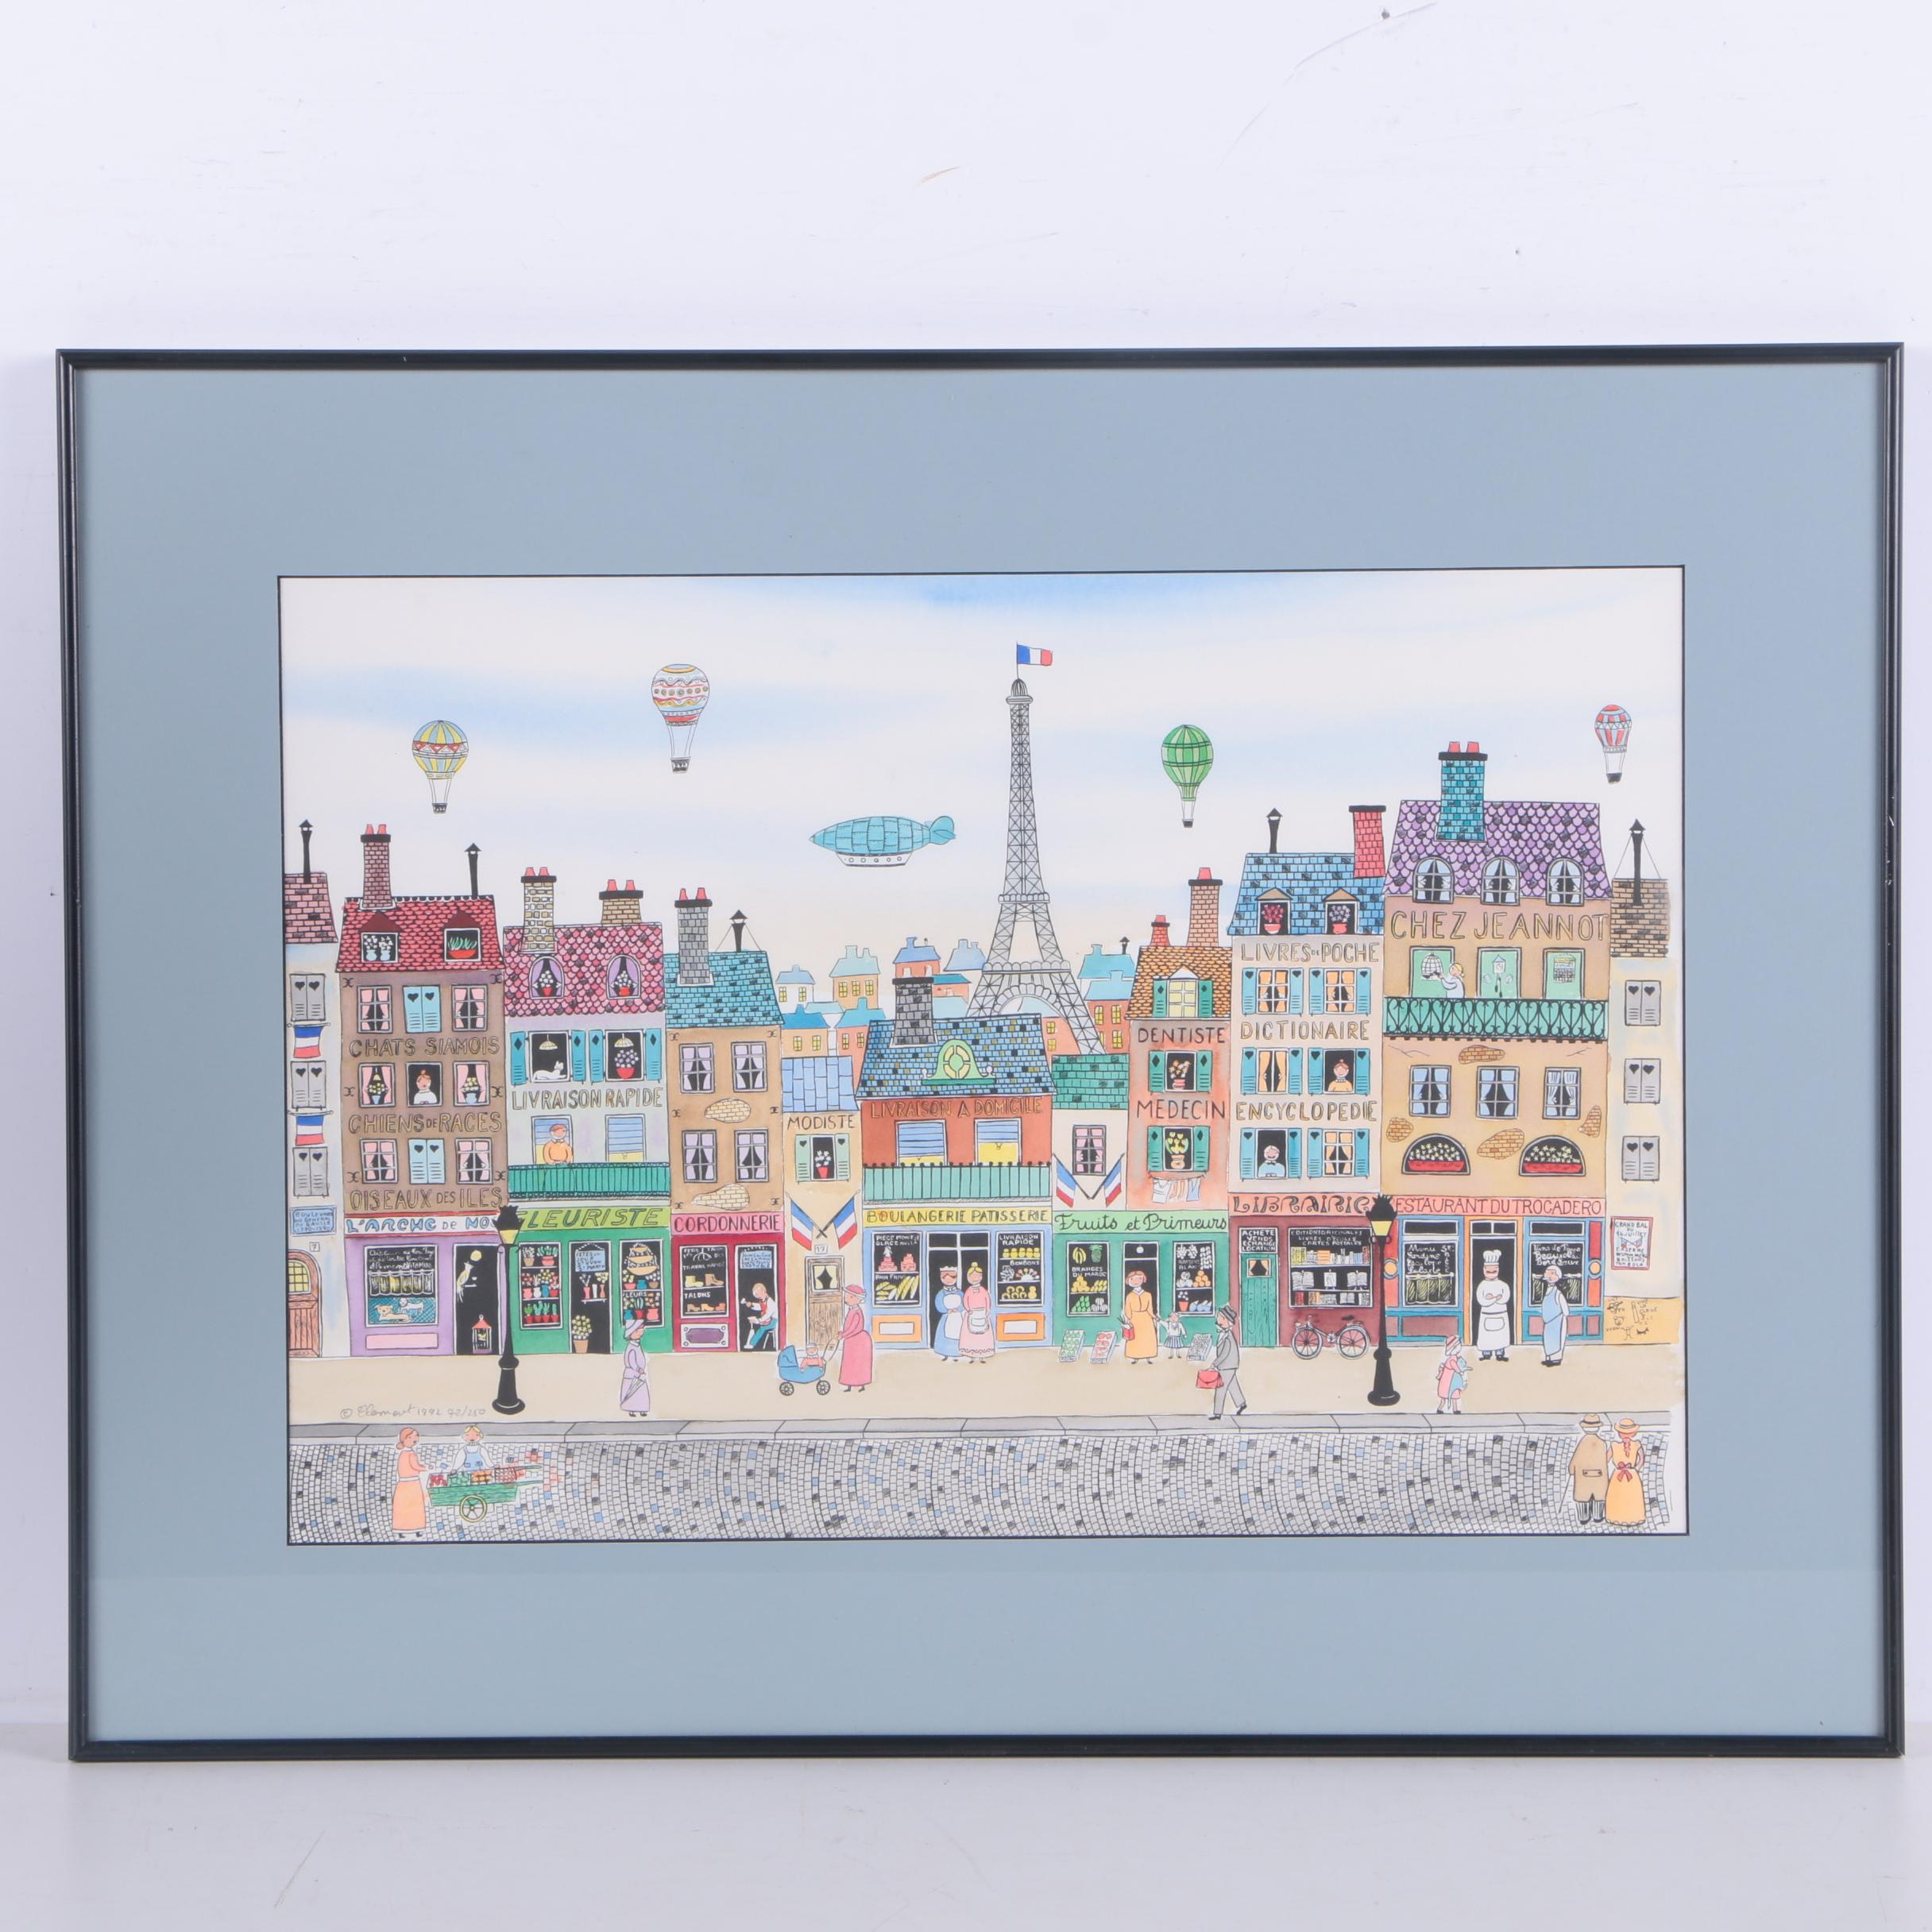 Limited Edition Hand-Colored Lithograph on Paper After Yvon Jeannot